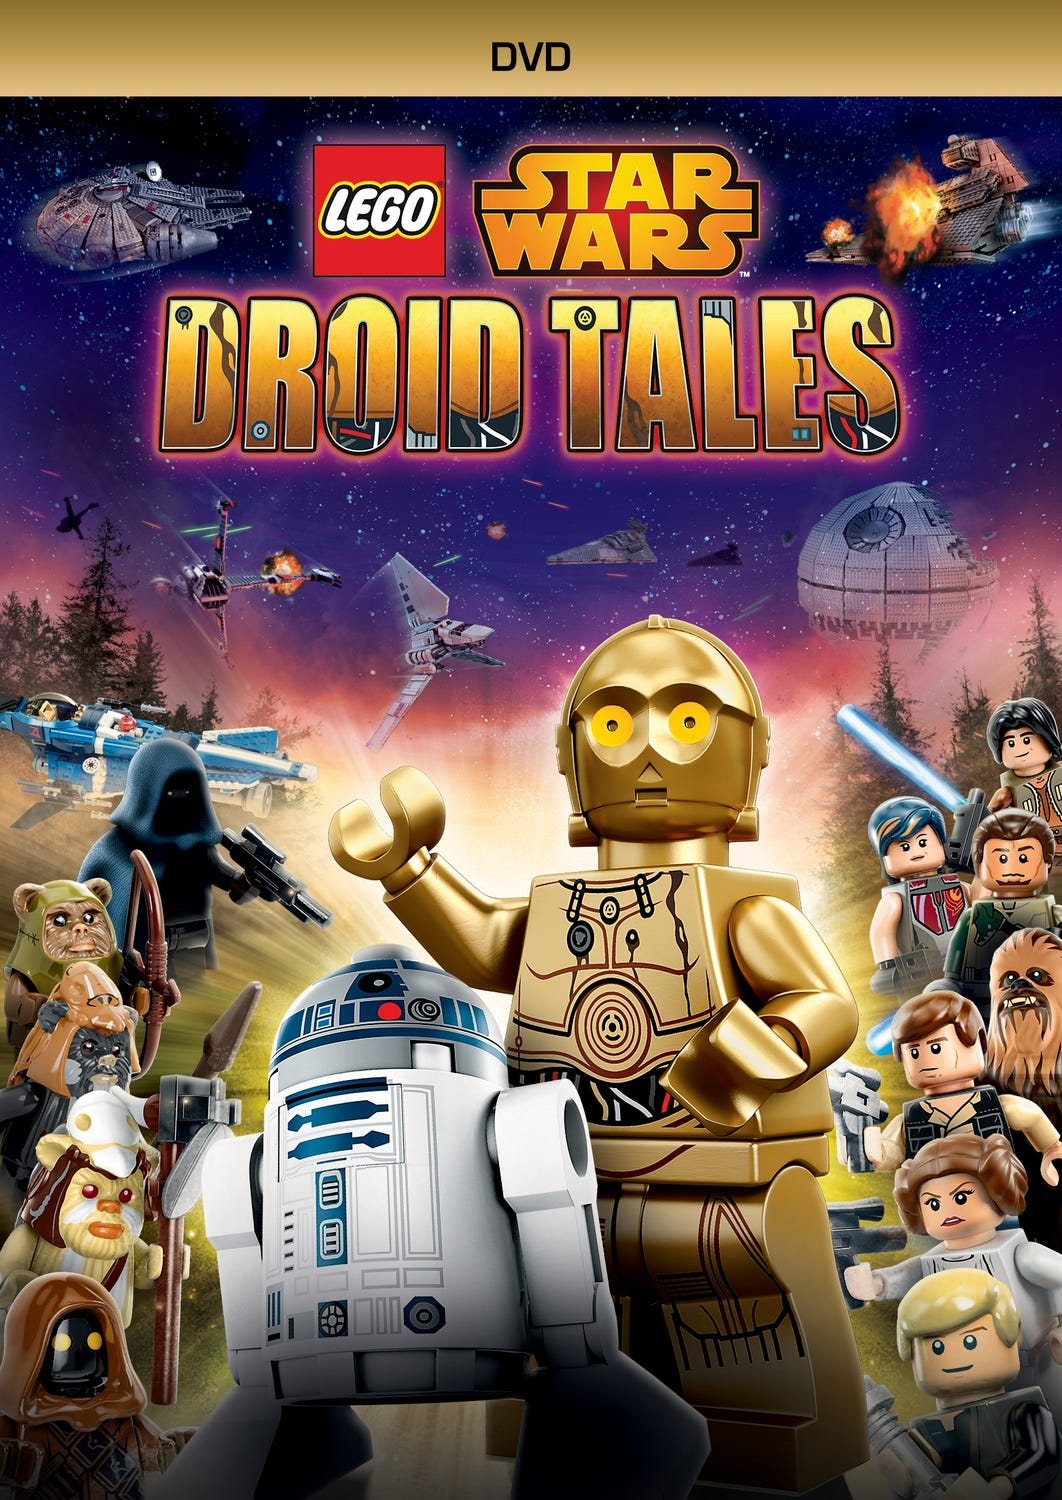 LEGO SW DROID TALES (DVD)